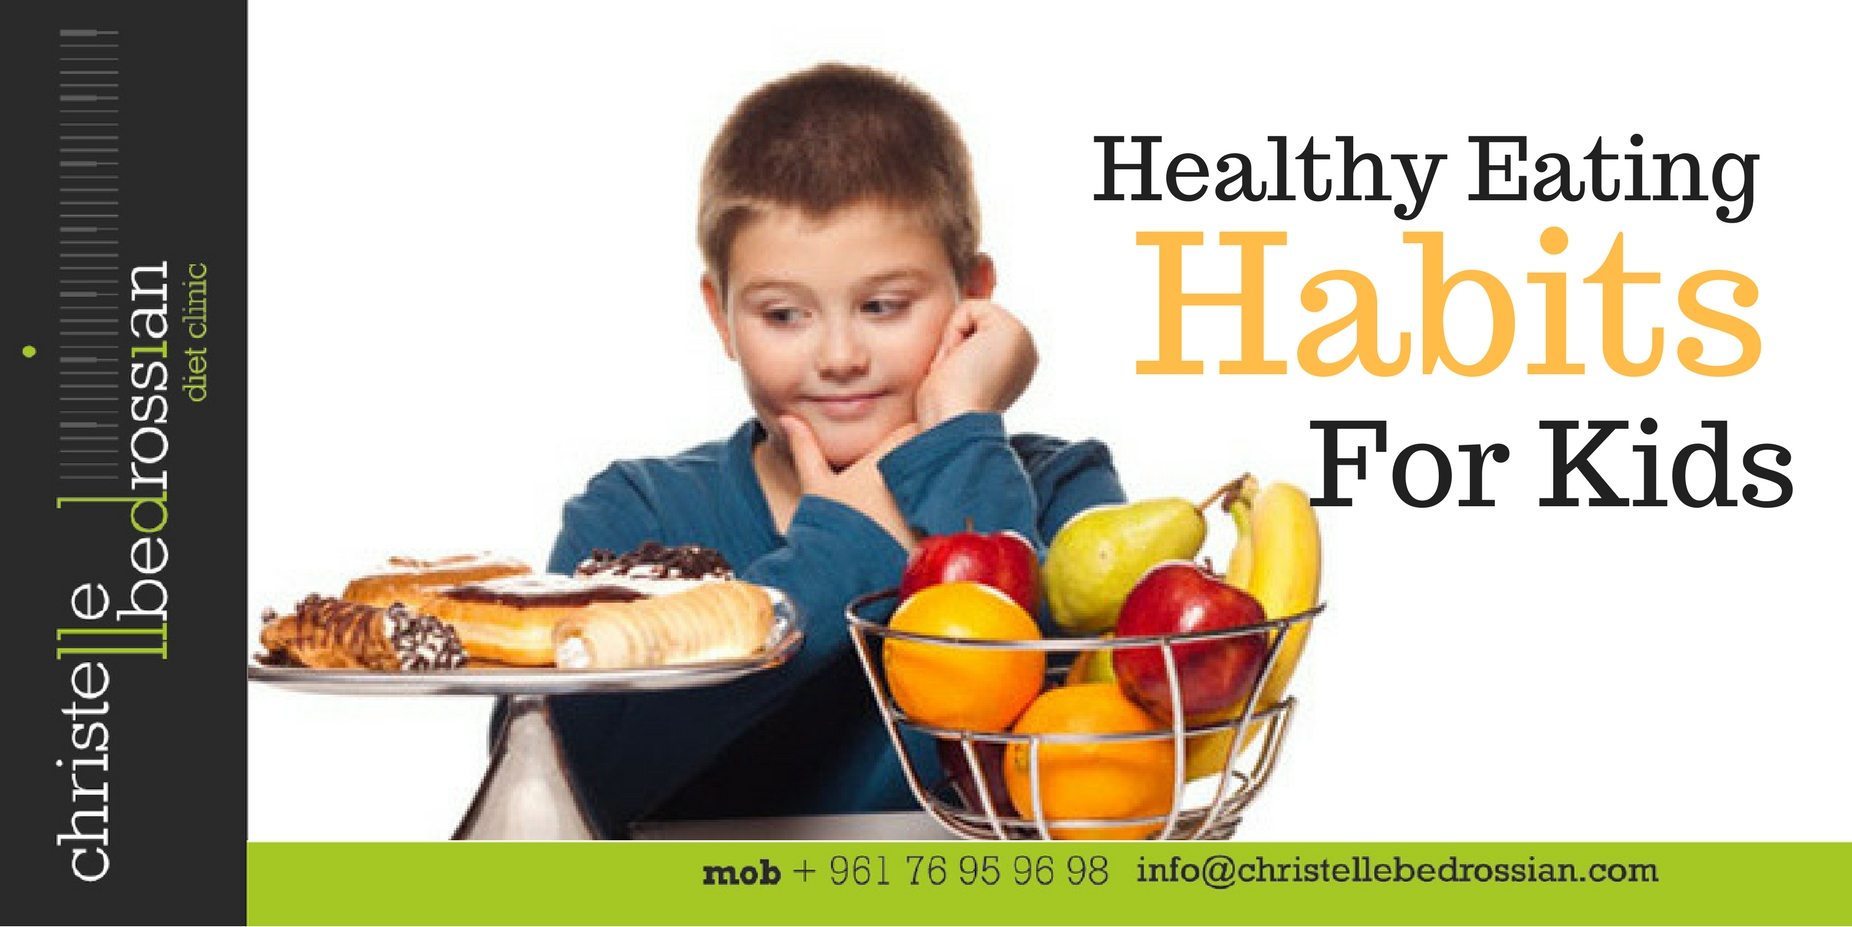 Interview Radio Liban Healthy Eating Habits For Kids